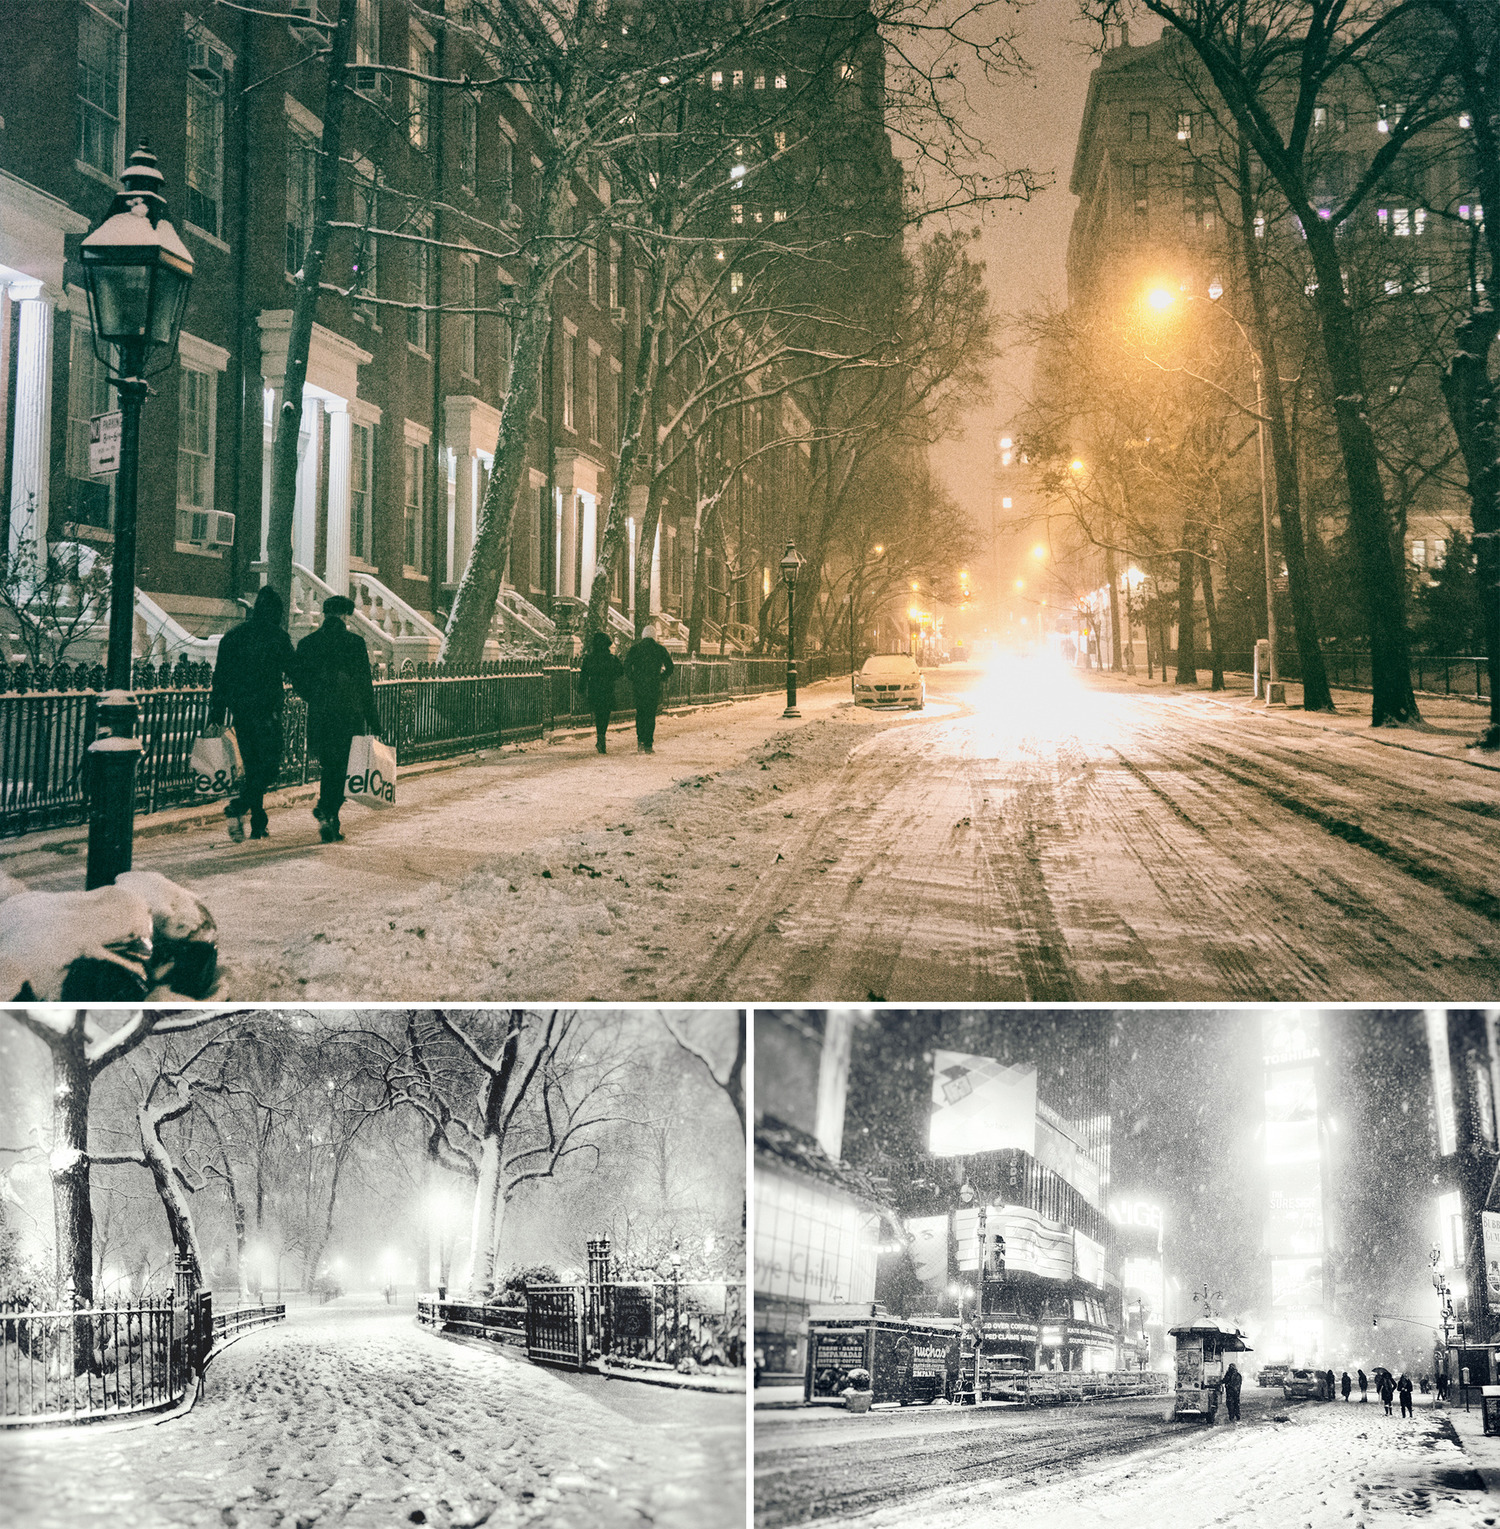 ...when city lights flicker in the snow and the night unfurls into a fever-dream cinematic sequence.